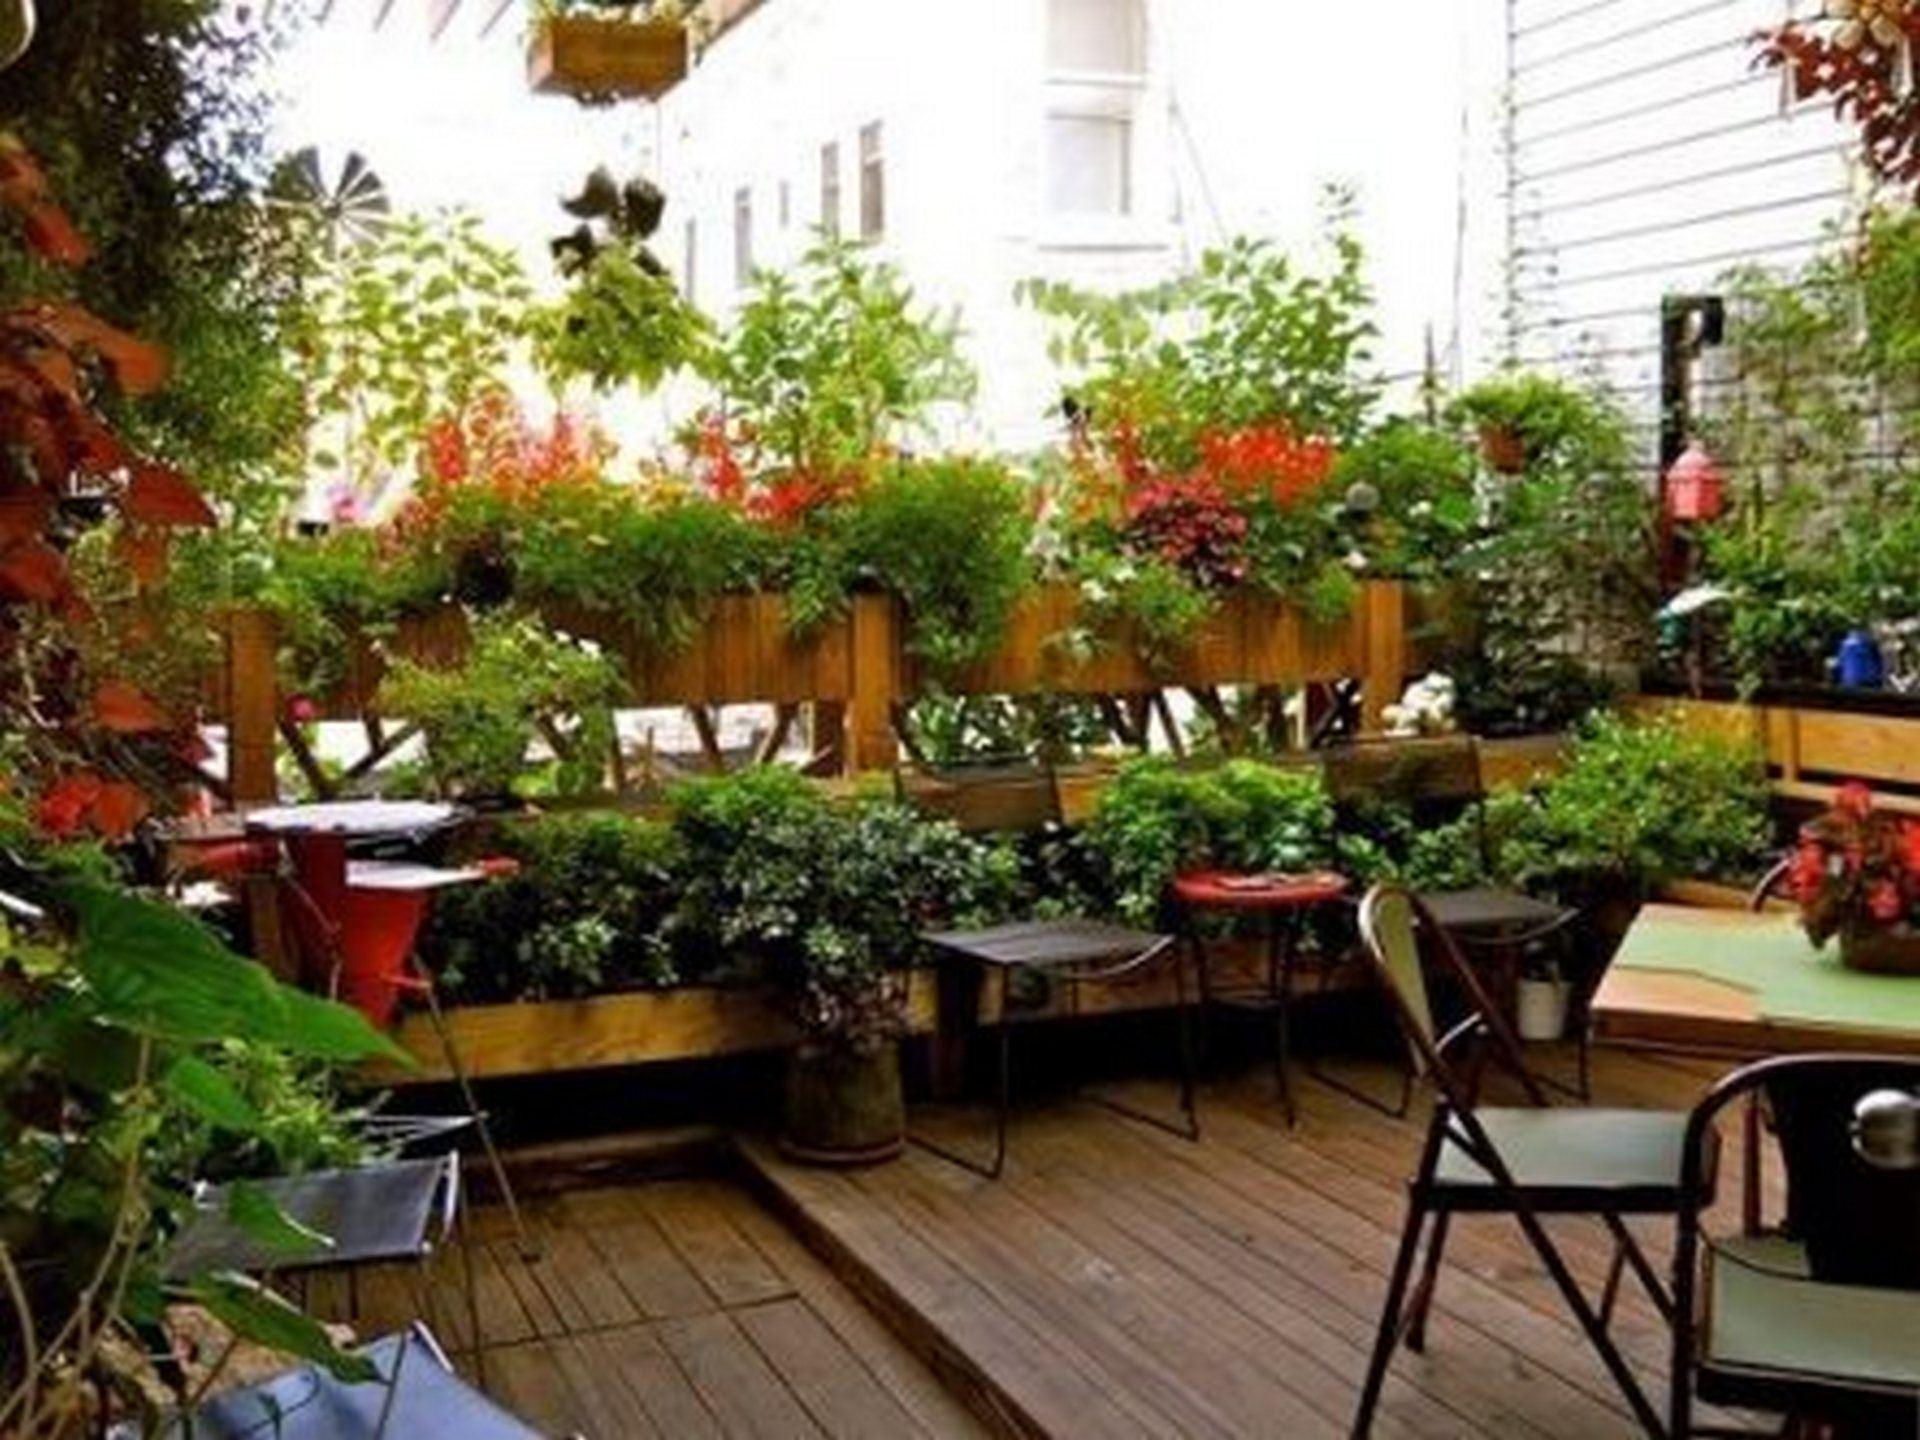 Balcony Garden Design Ideas Terrace Ideal Small Space